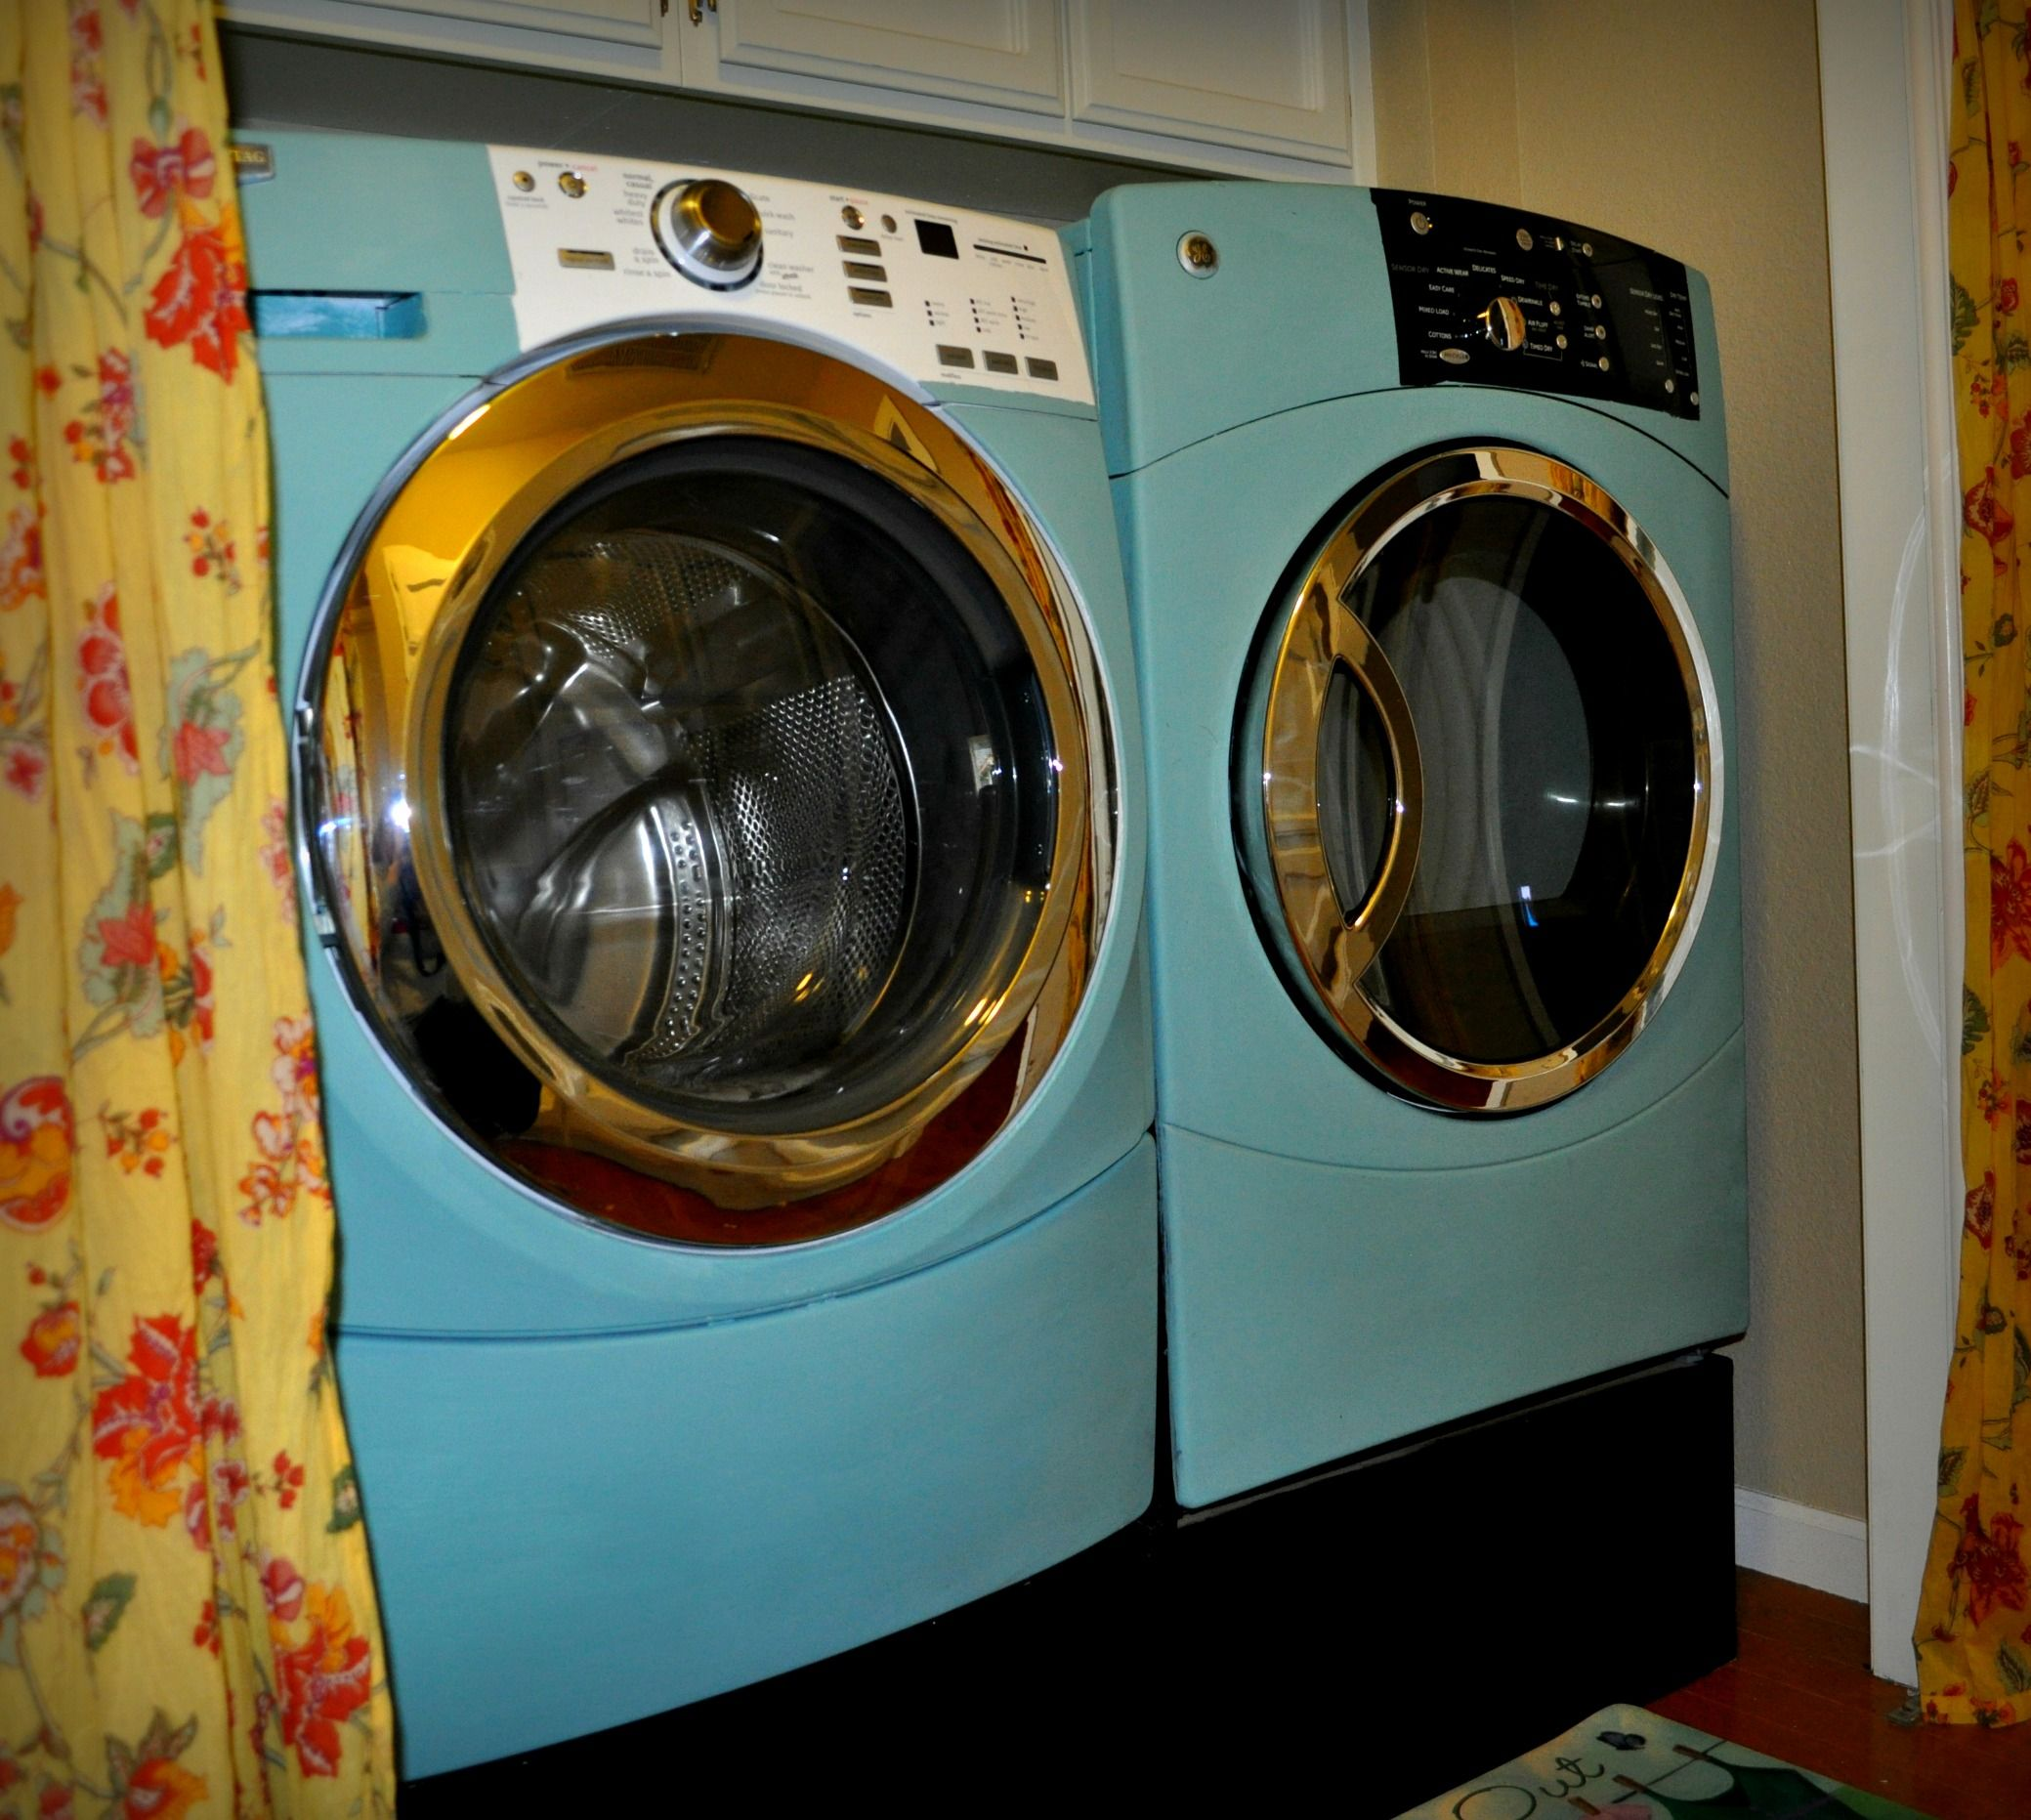 I Painted My White Washer And Black Dryer With Chalk Paint Dream Laundry Room Painting Appliances Washer And Dryer